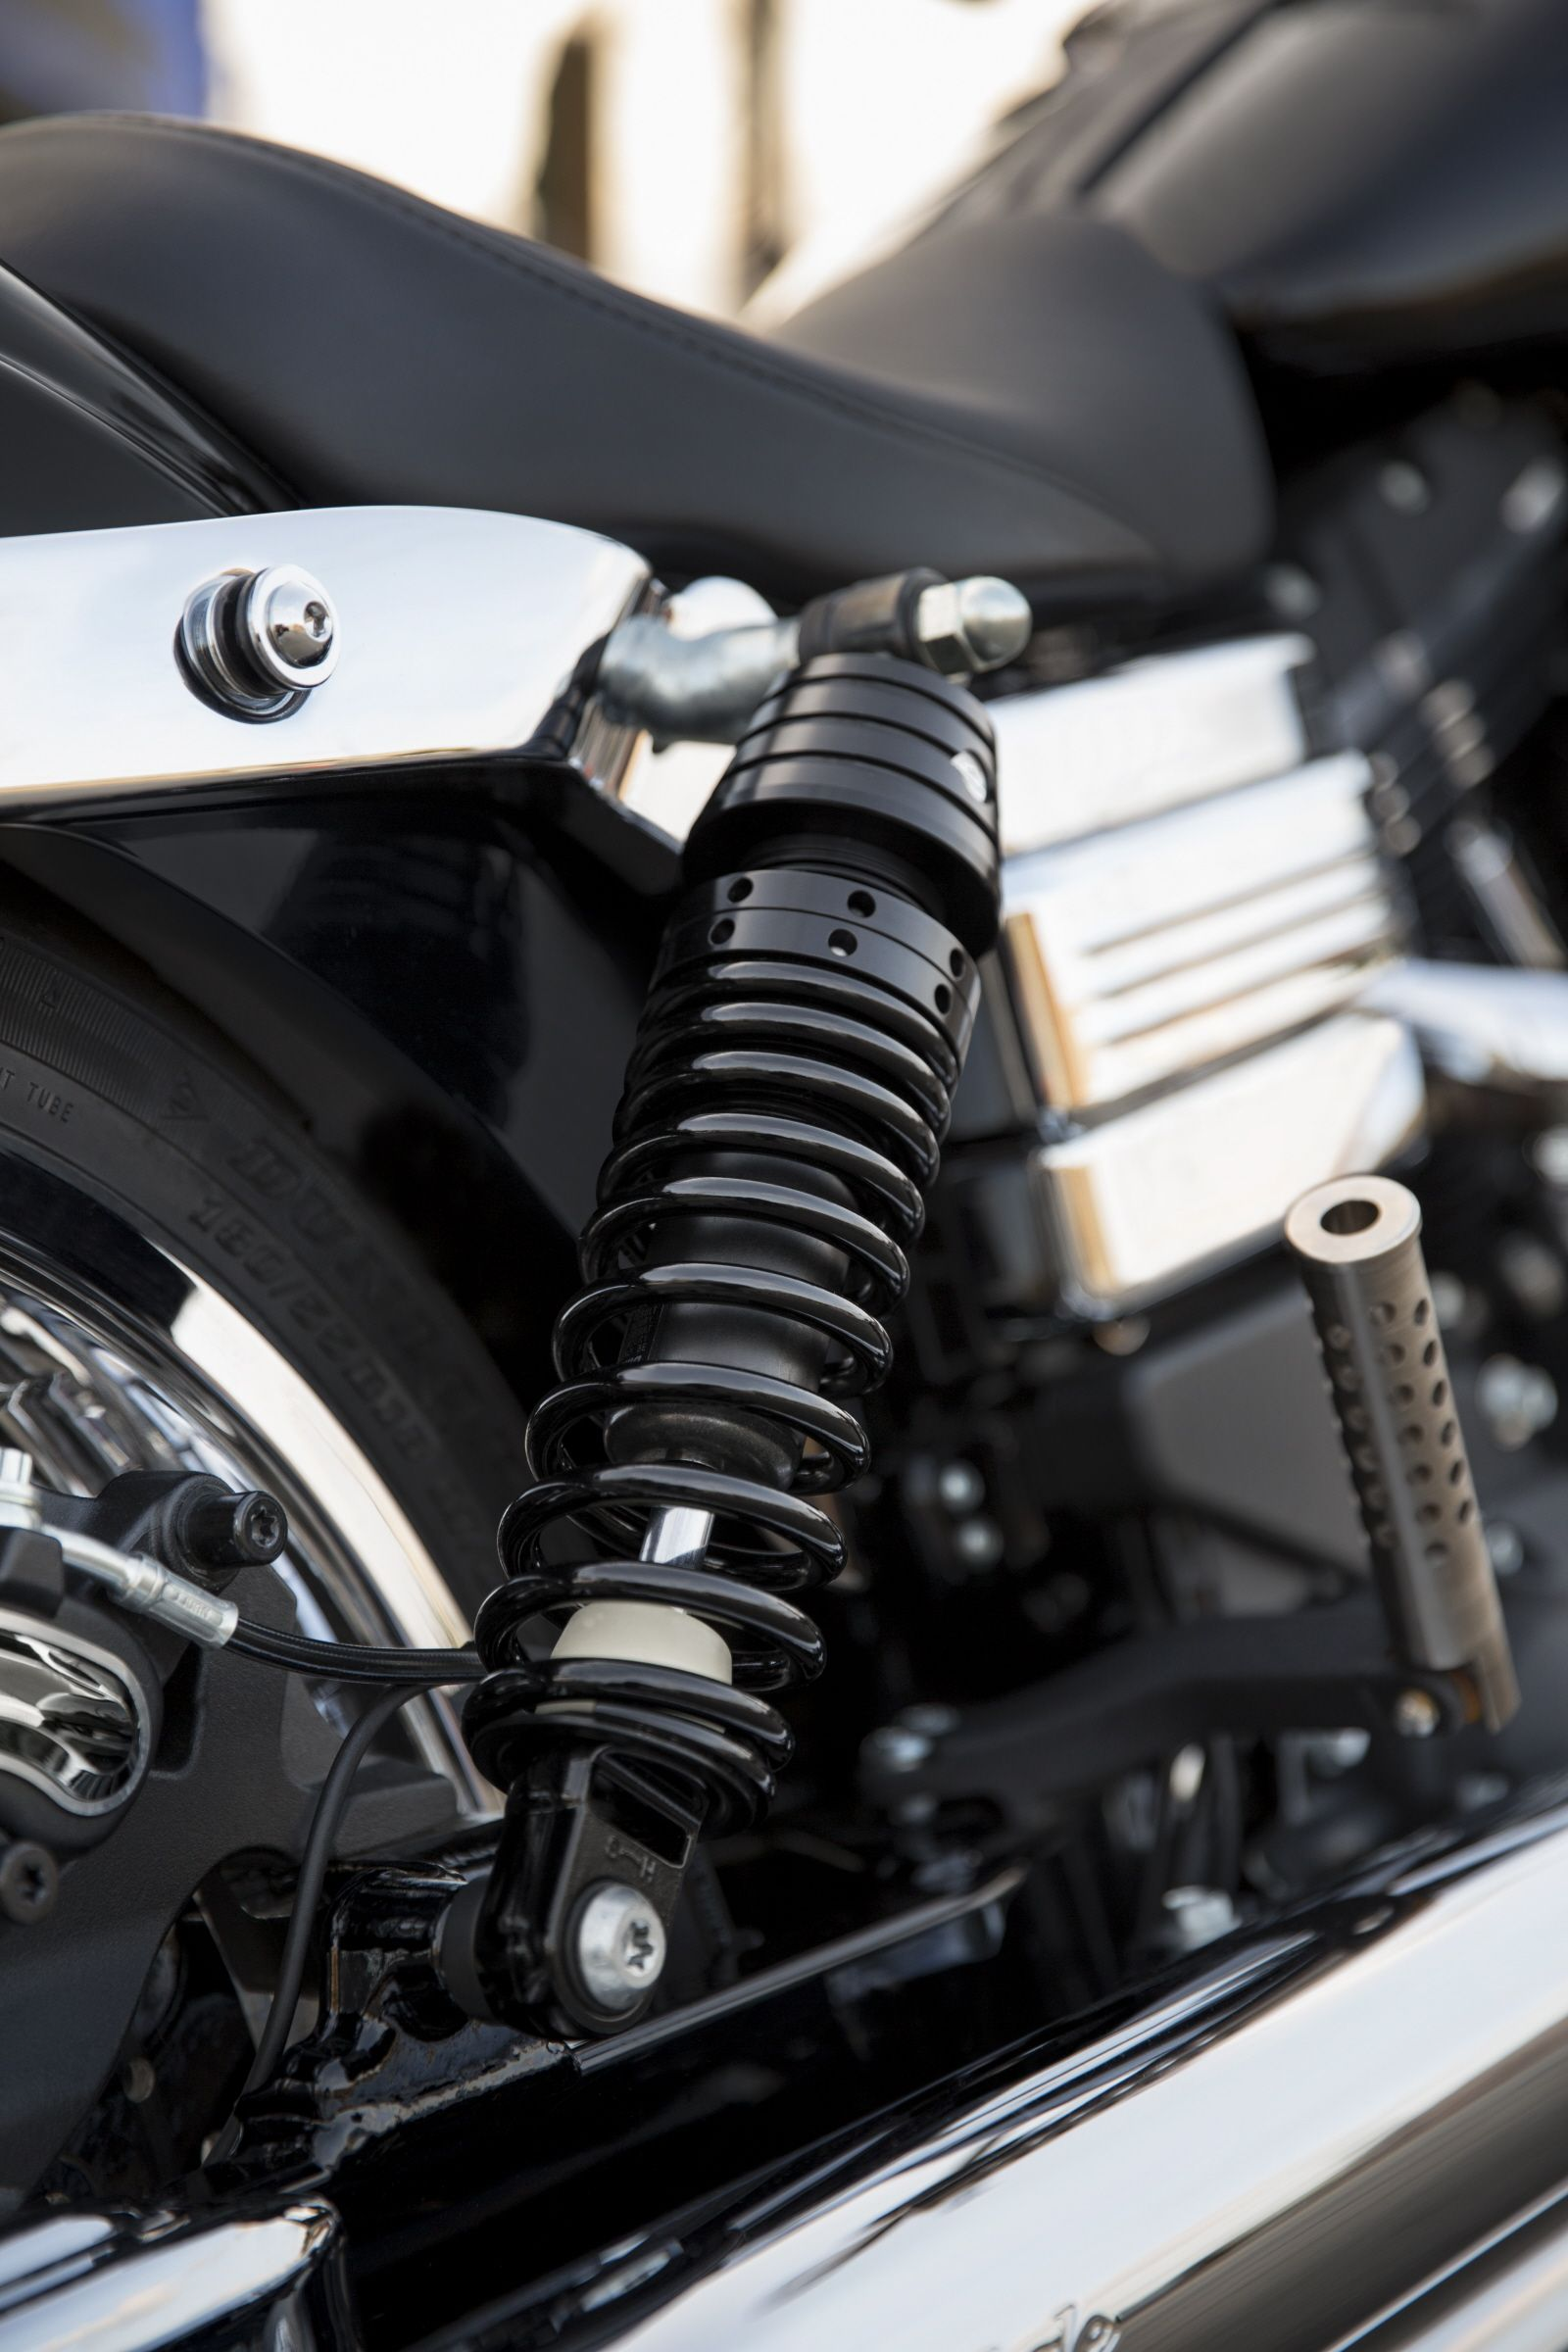 Experience a comfortable and confidence-inspiring ride – no matter the  pavement conditions. | Harley-Davidson Premium Ride Emulsion Shocks